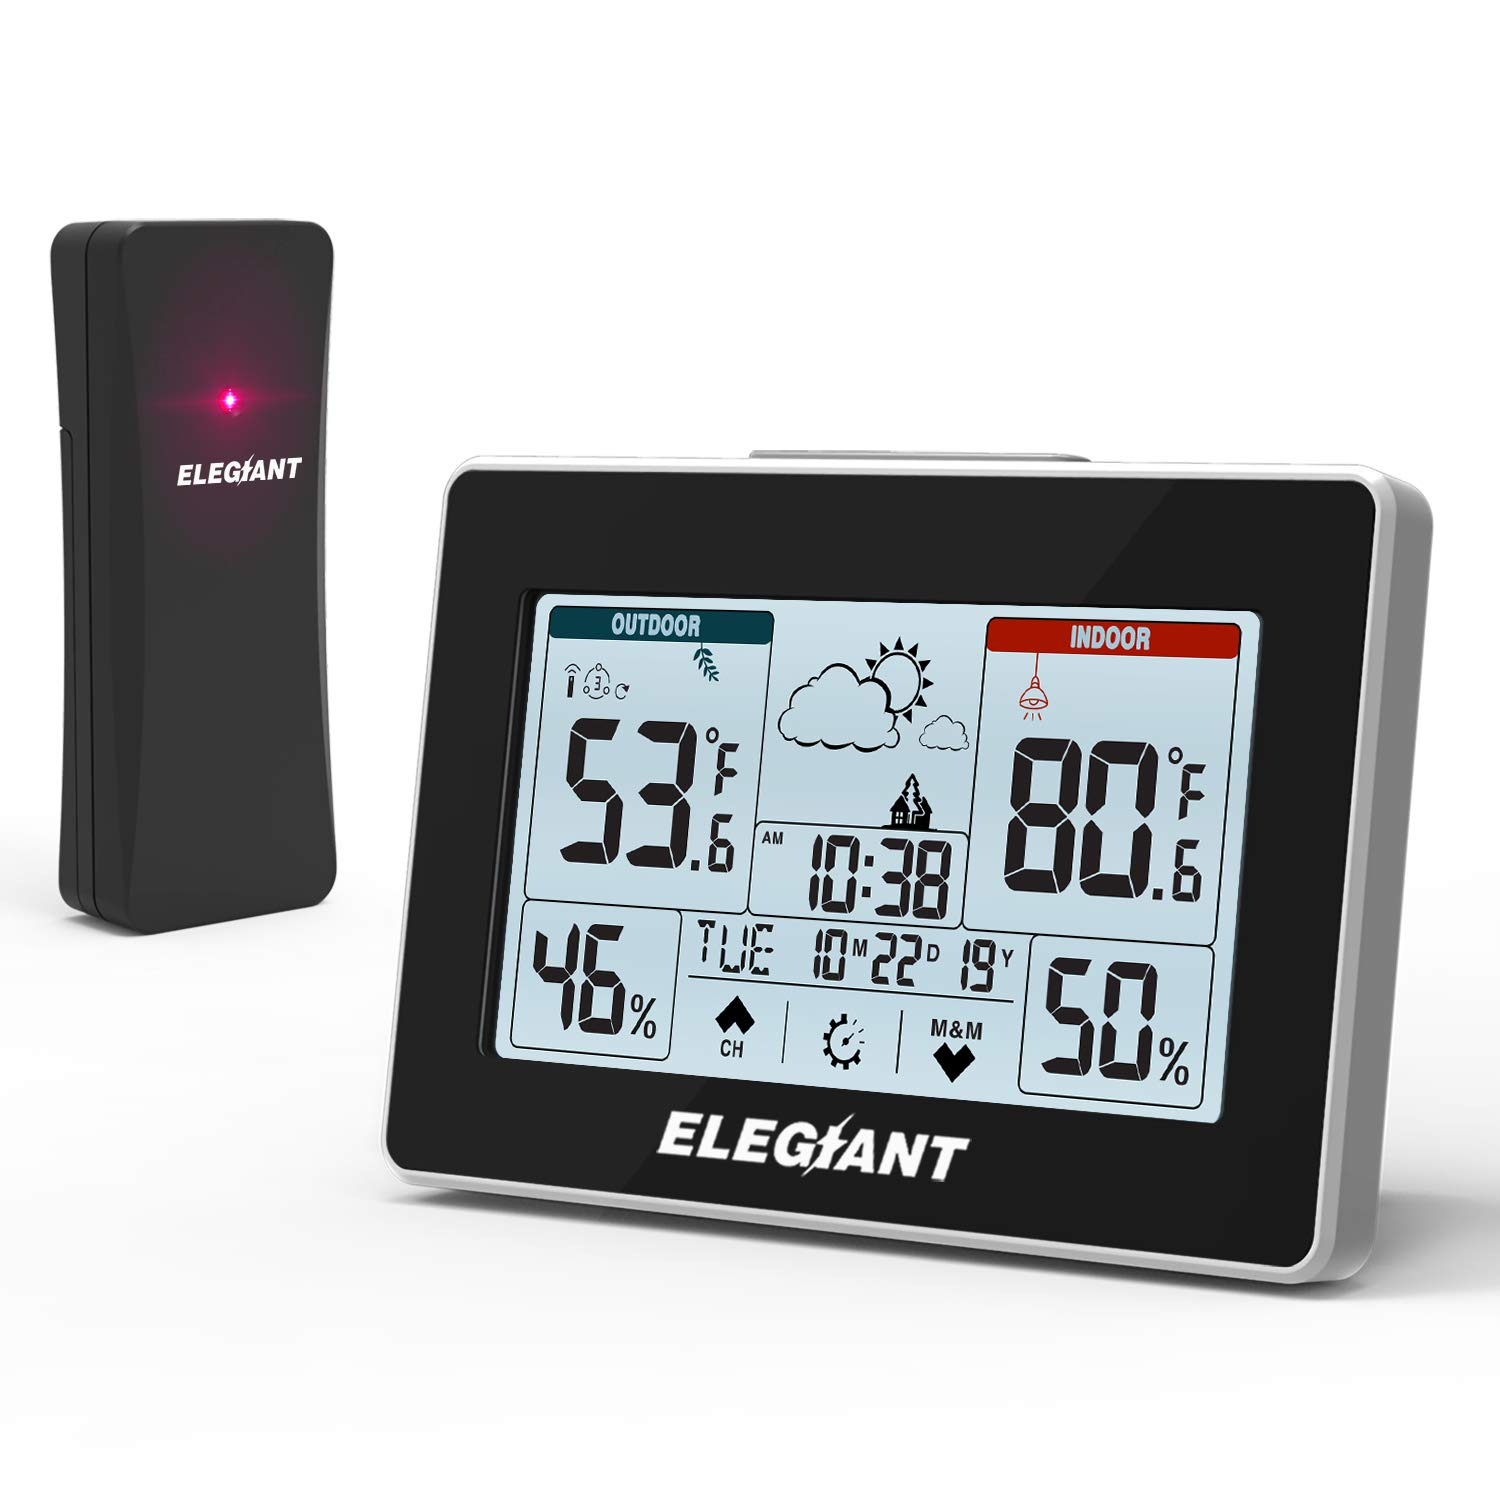 ELEGIANT Wireless Weather Station, Indoor Outdoor Thermometer Hygrometer with Sensor, LCD Touch Screen, Digital Temperature Humidity Monitor, Weather Forecast, Time & Date(7 Language), 3 Channels